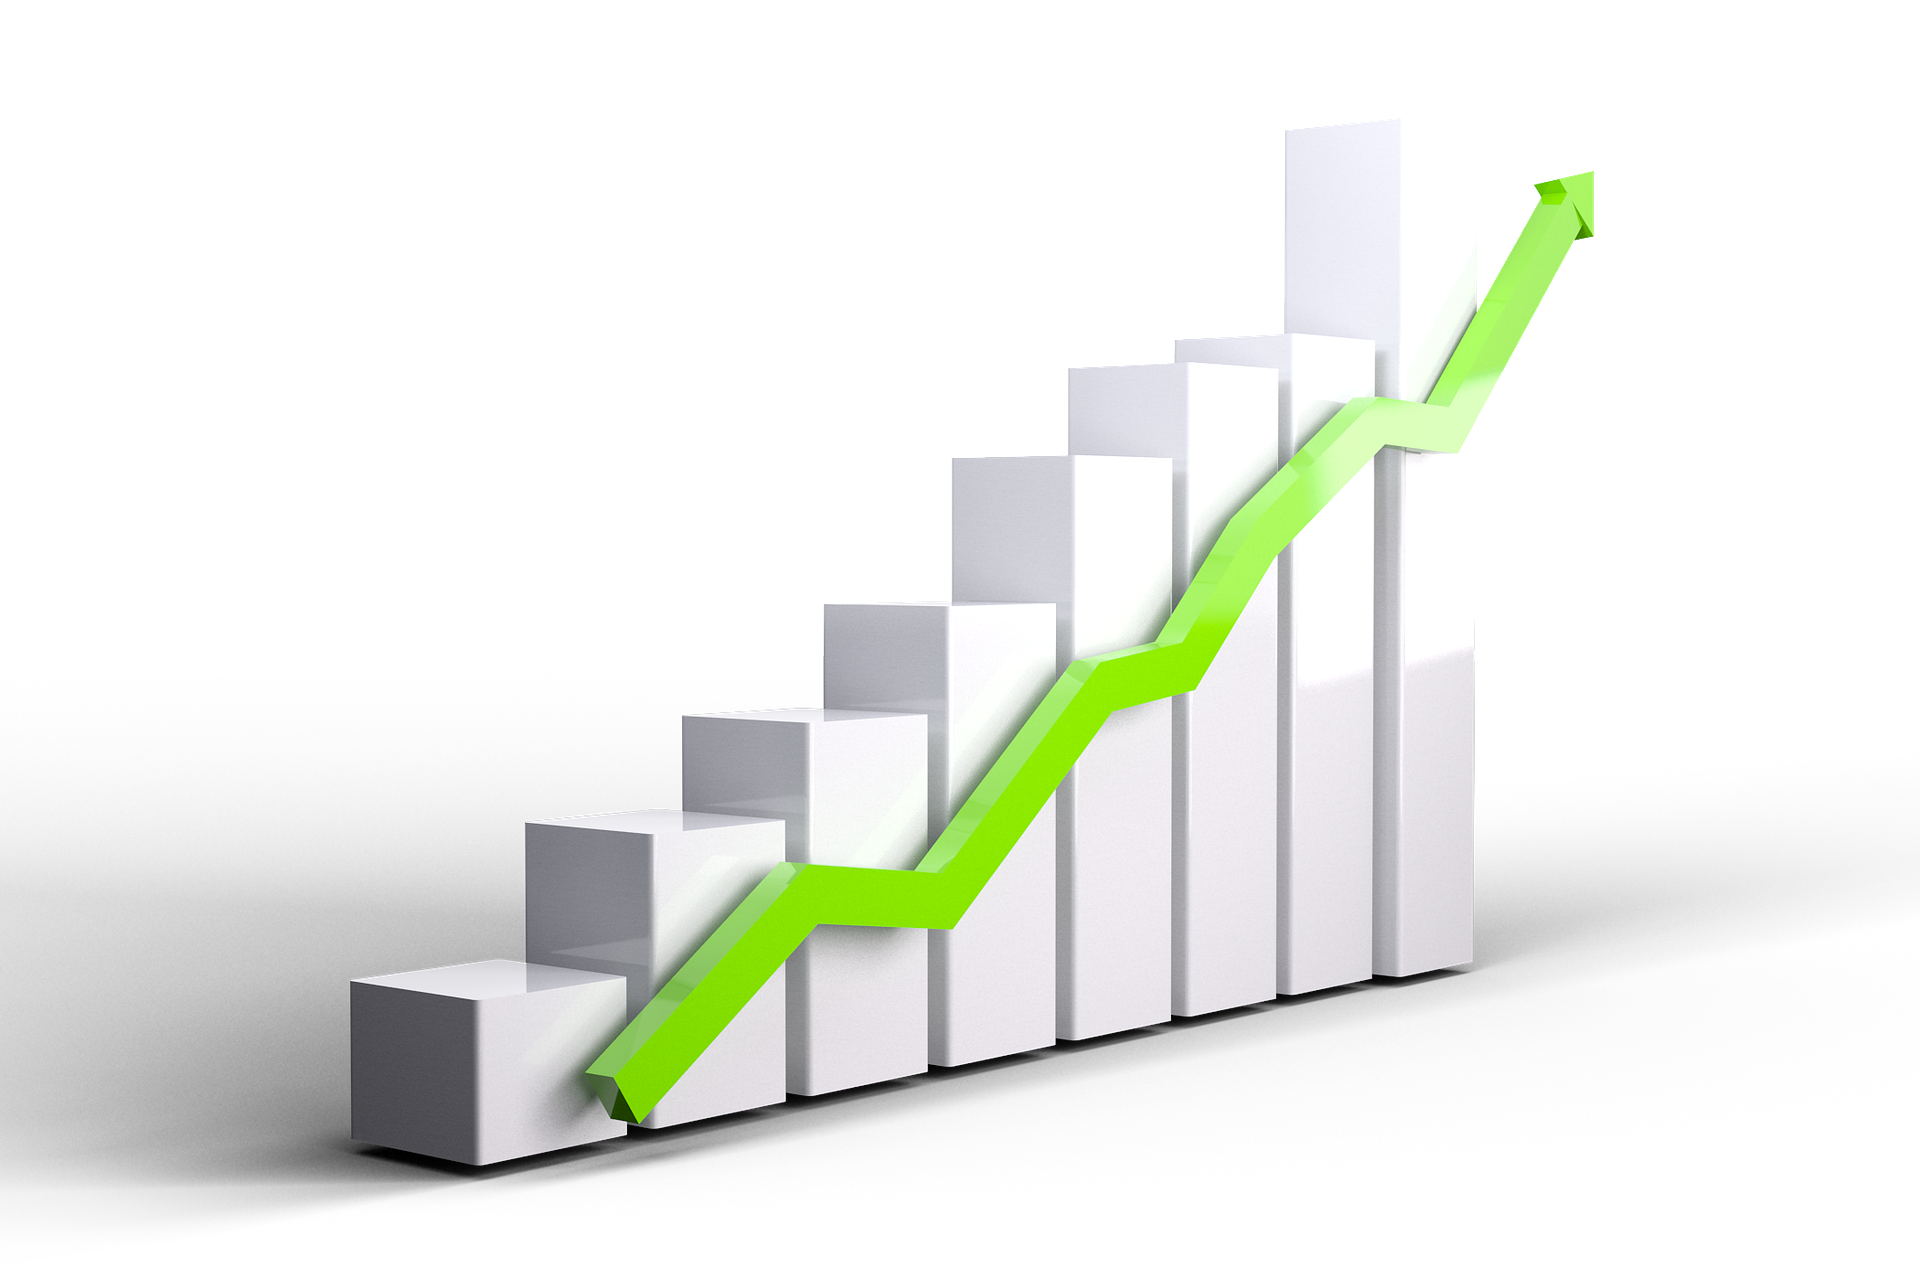 stock chart showing steep increase